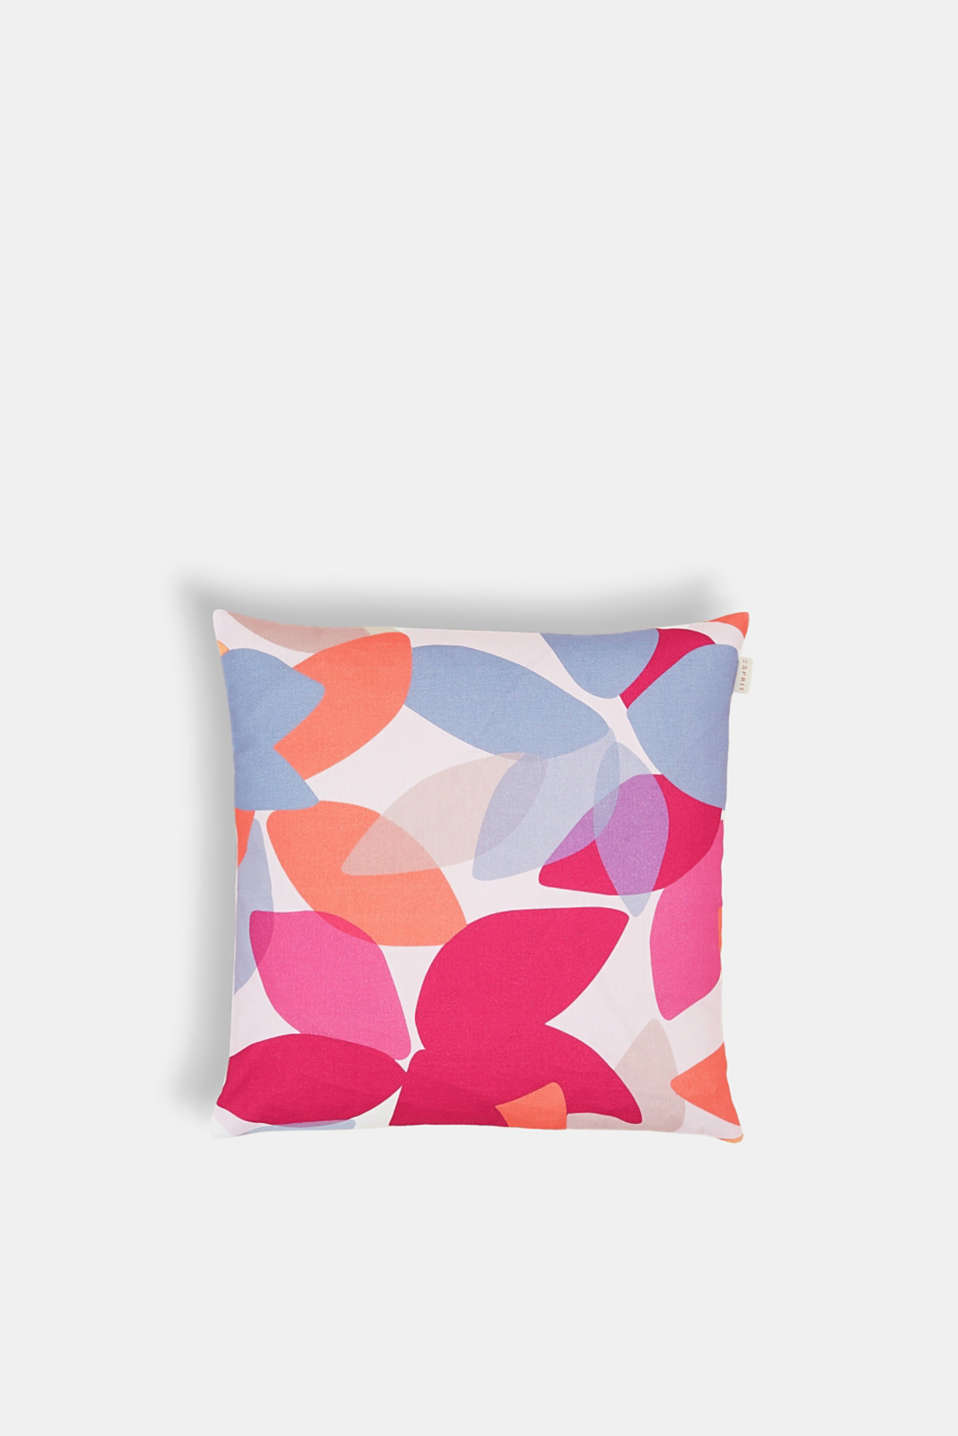 Esprit - Cushion cover with a graphic print